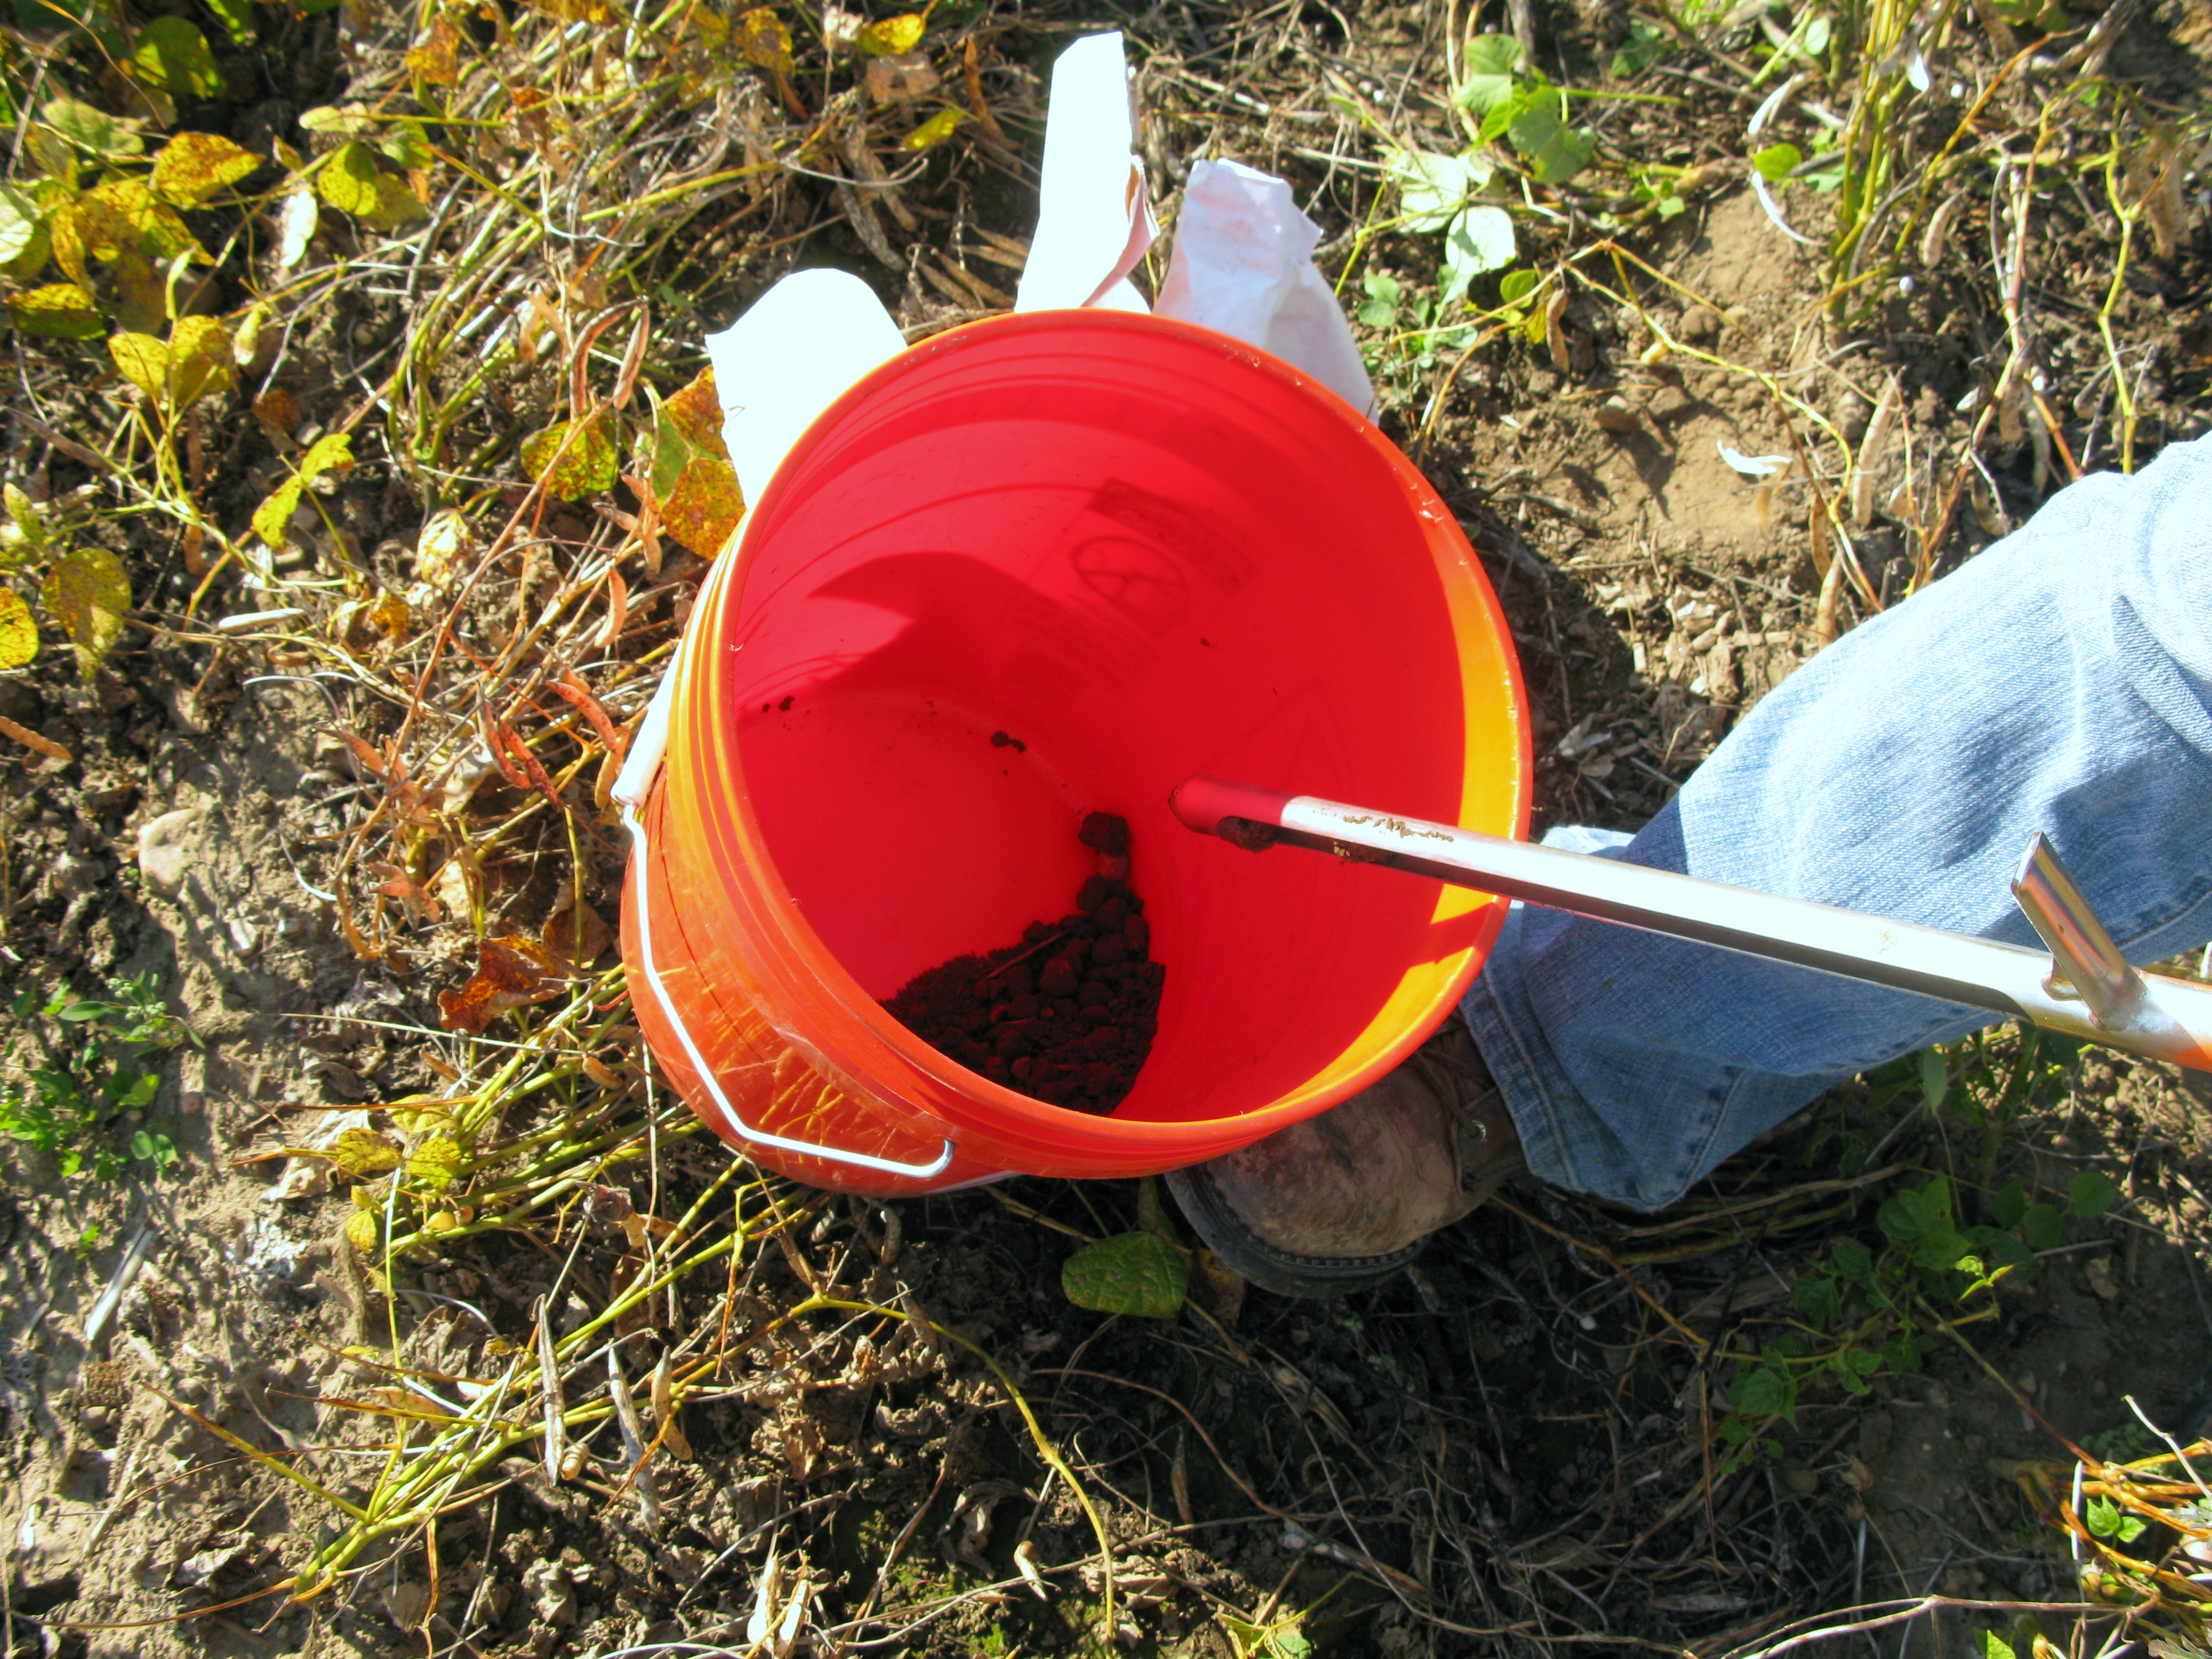 Soil subsamples collected into an orange bucket.